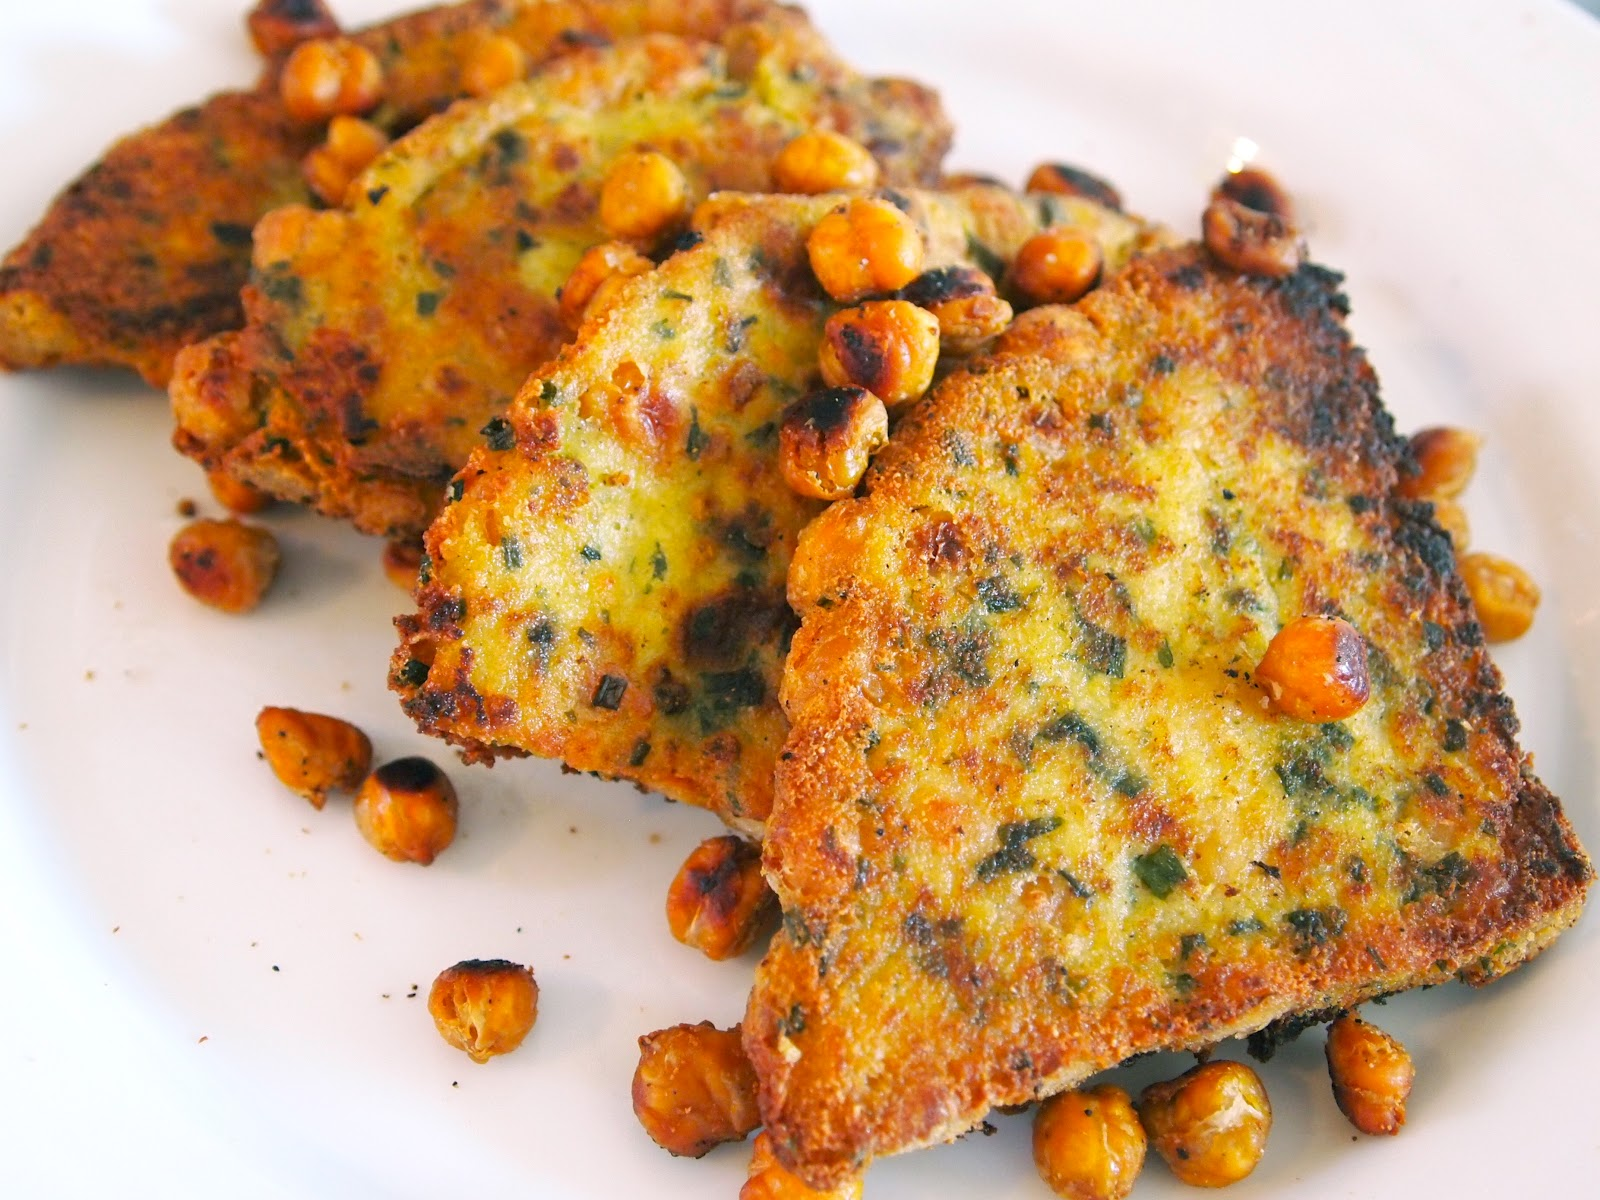 ... chickpea fritters chickpea salad fried chickpea polenta panelle